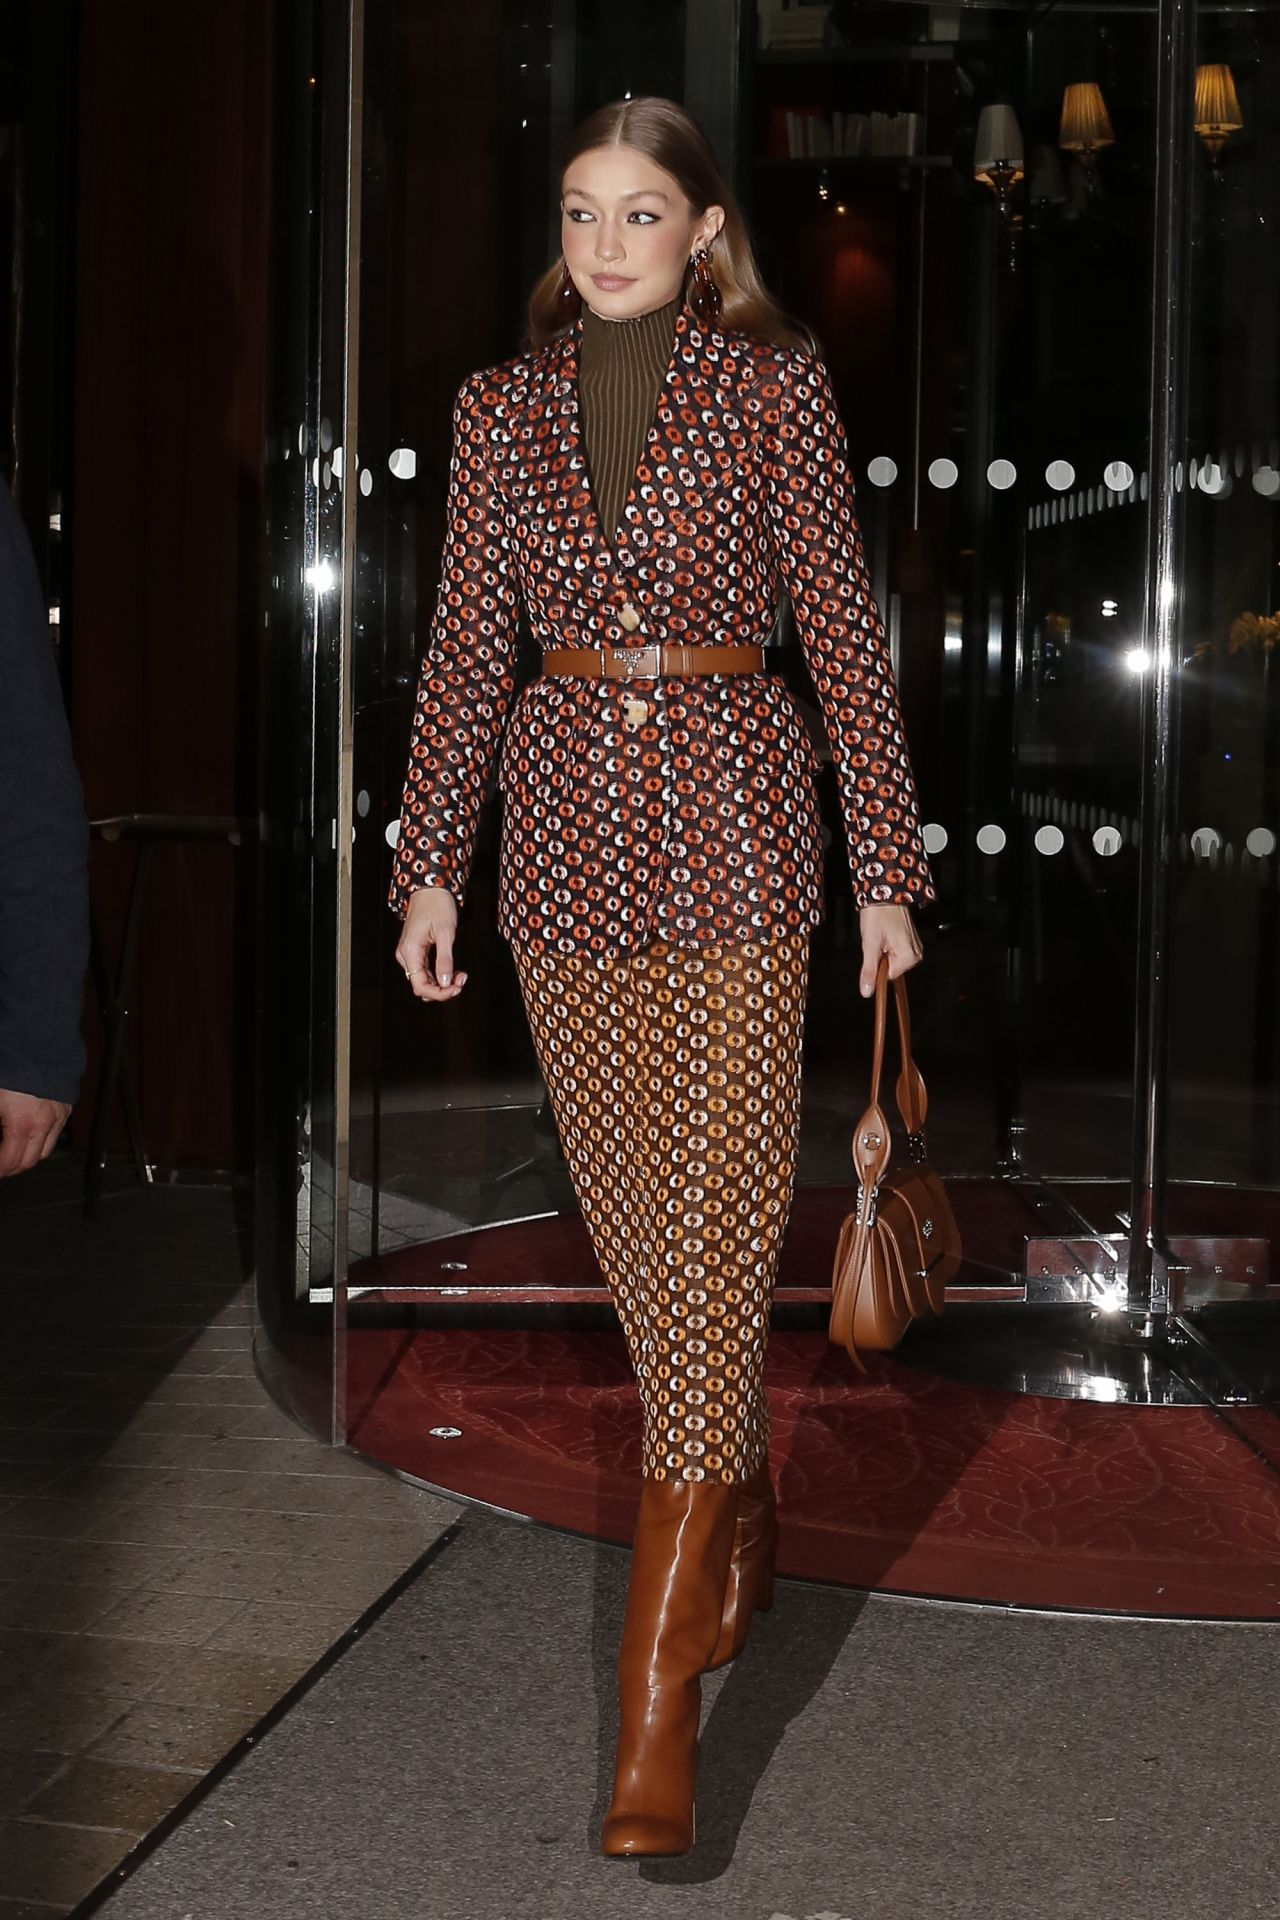 gigi-hadid-in-prada-arrives-at-the-prada-dinner-party-in-paris